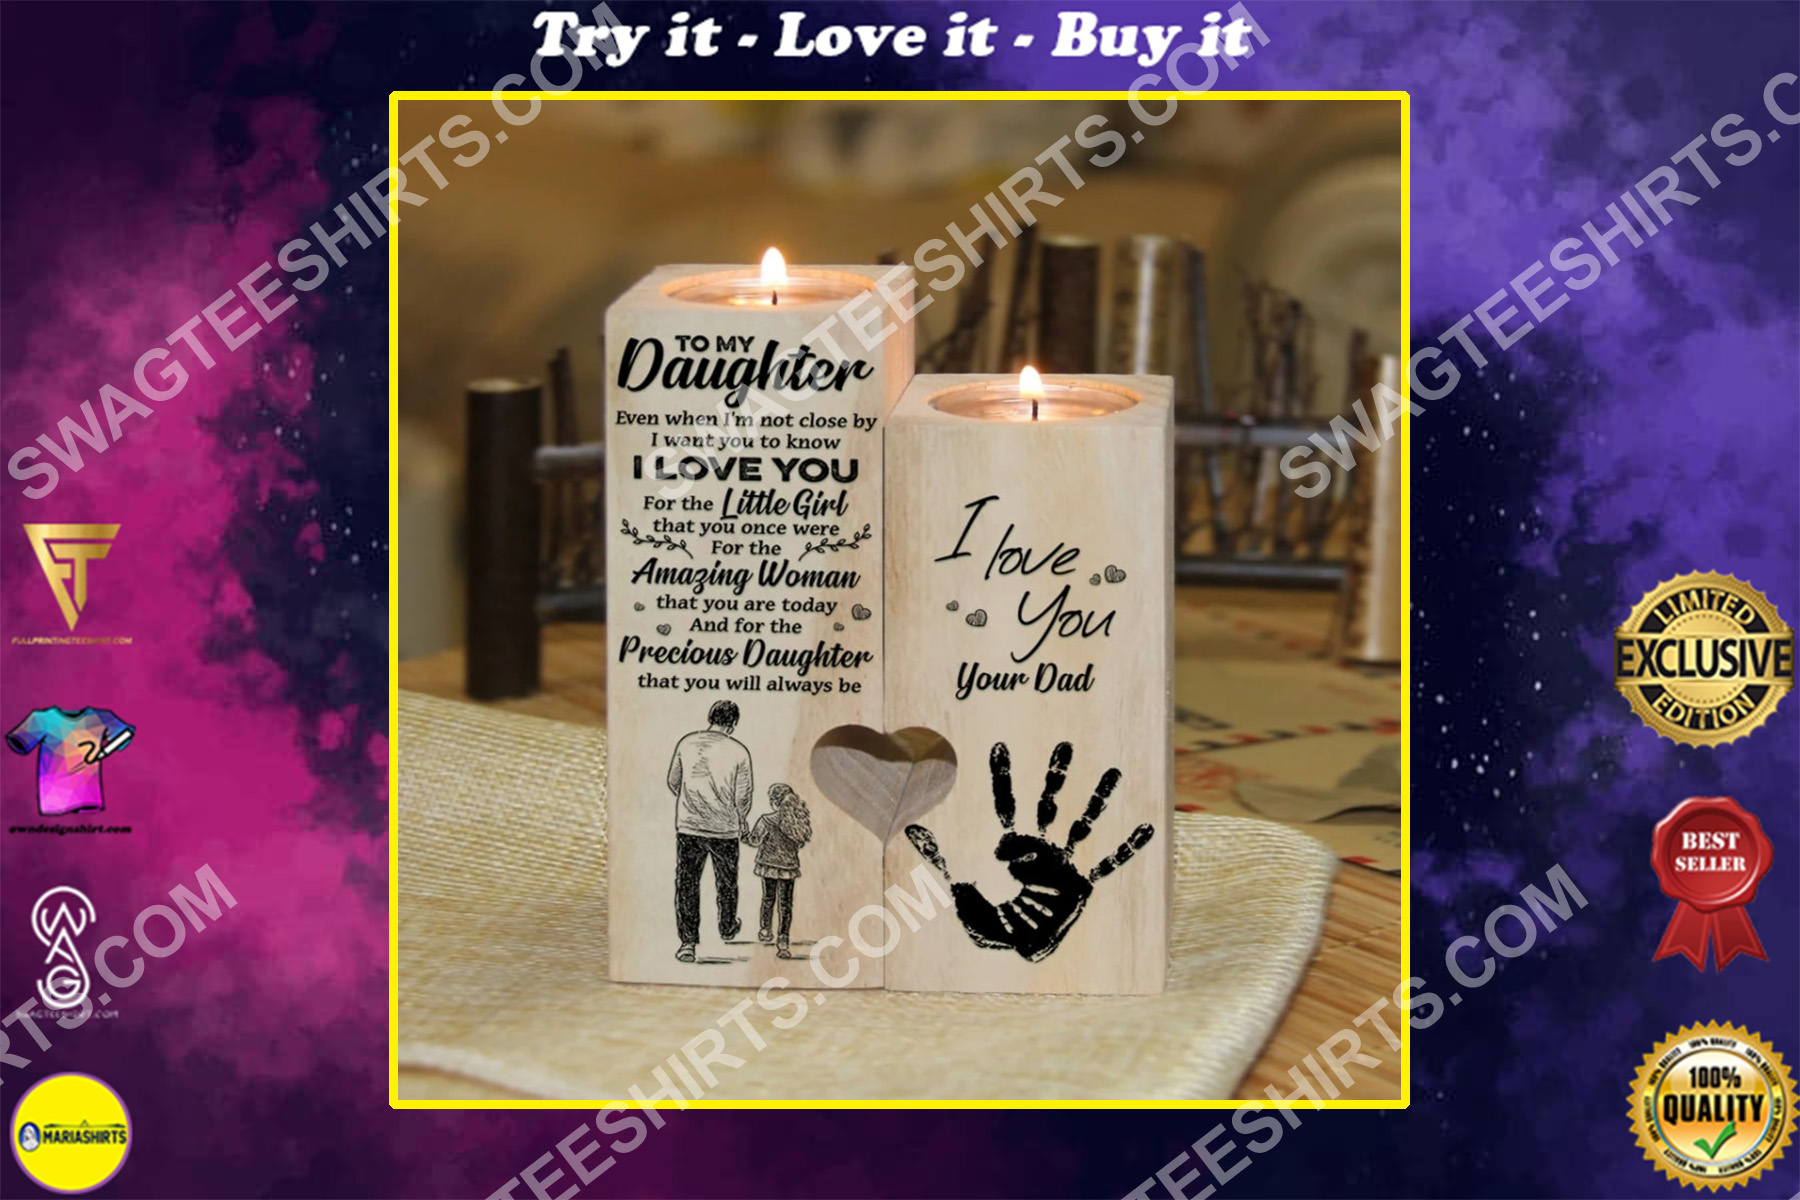 to my daughter i love you your dad candle holder